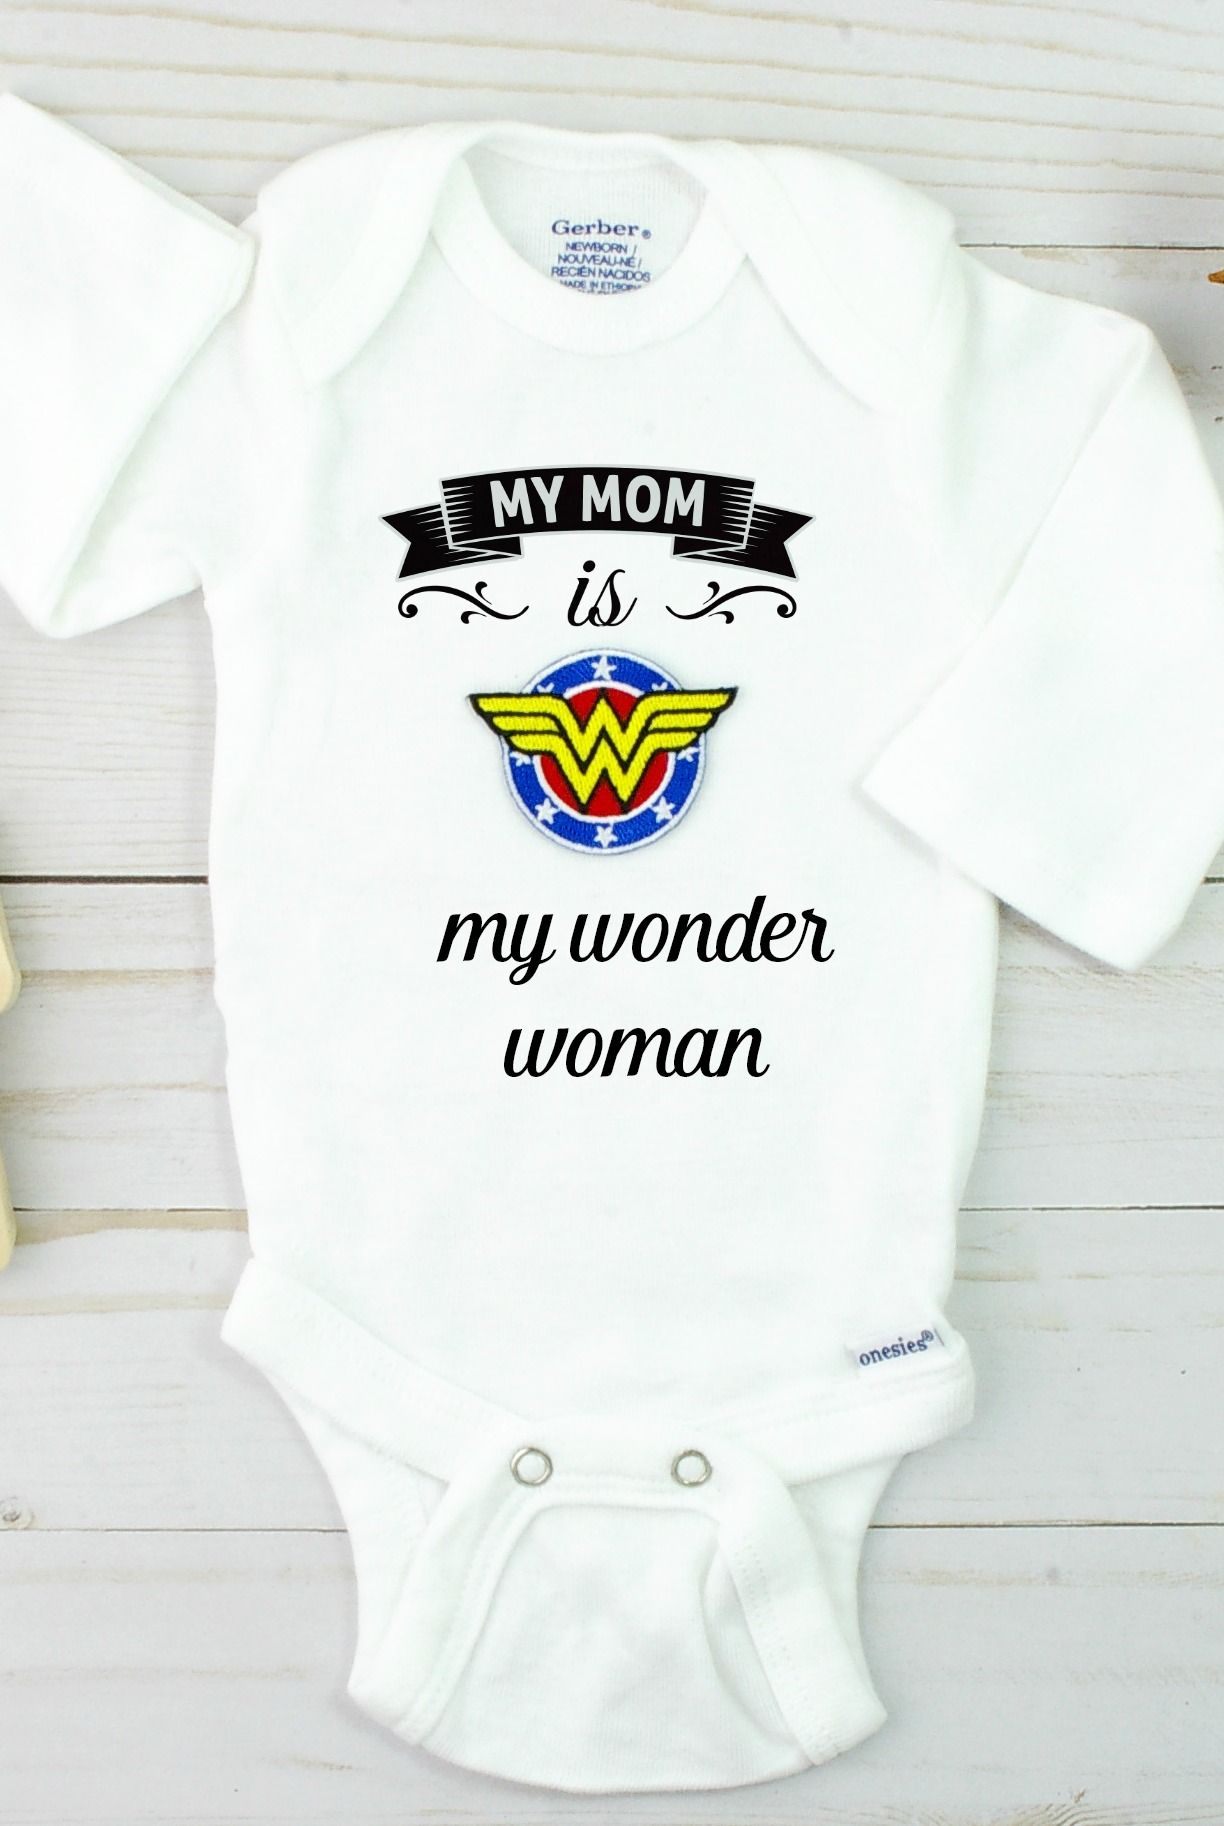 My mom is my wonder woman onesie FREE shipping one day sale